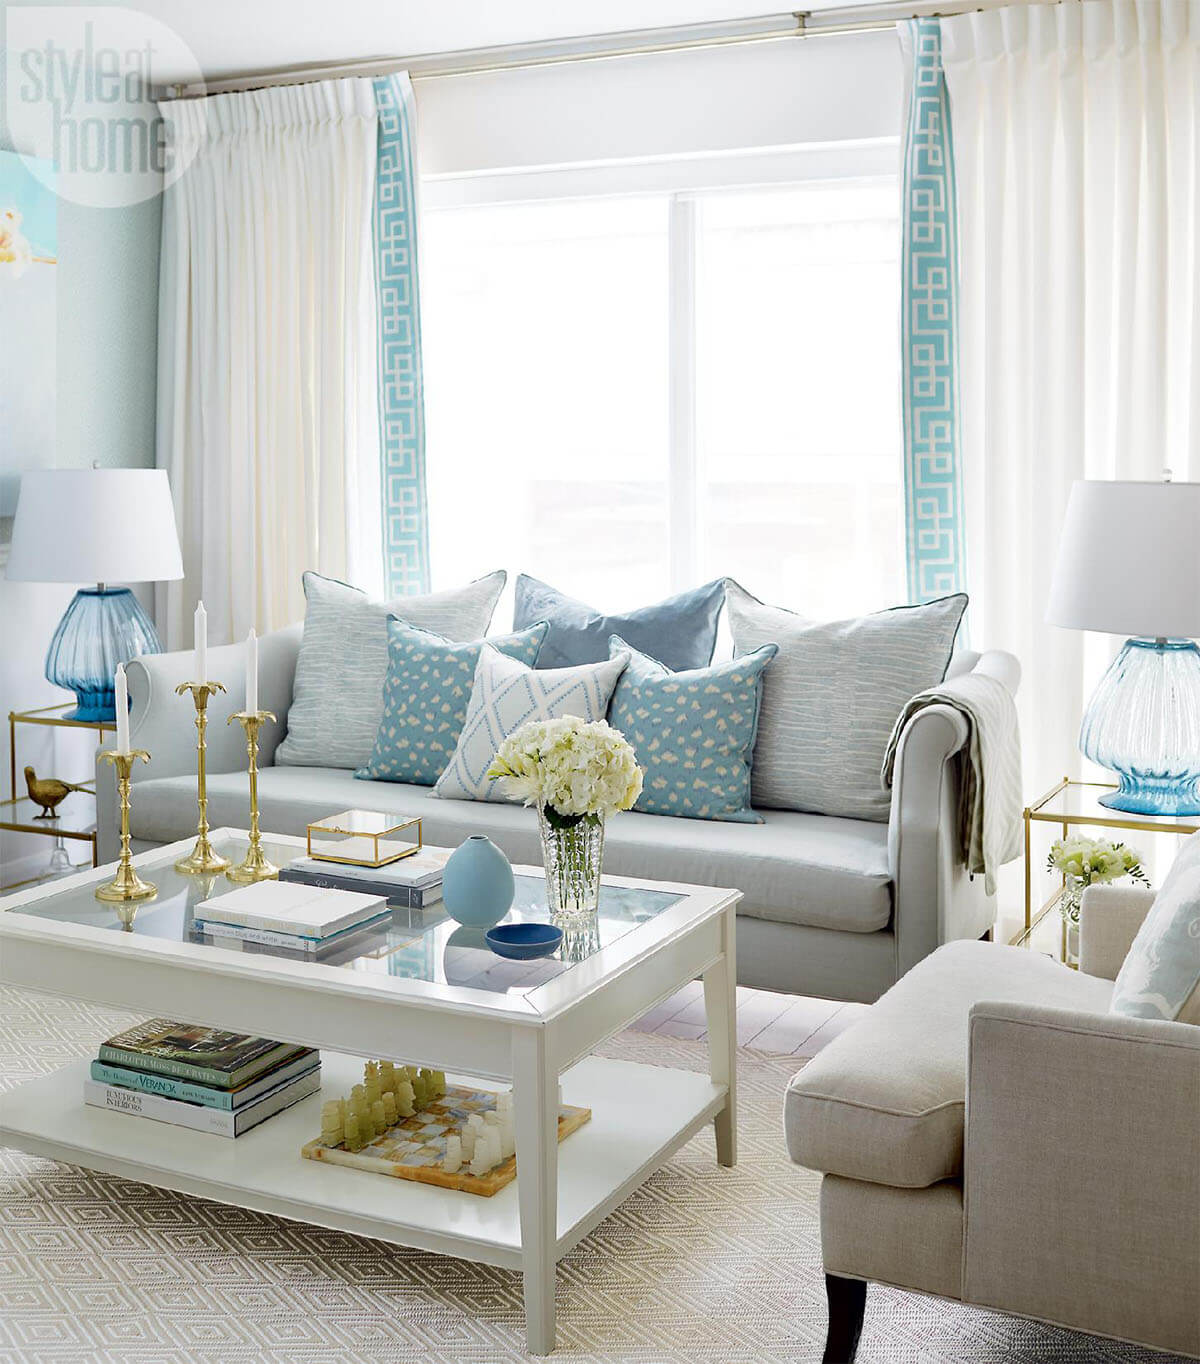 20. Blue Accents Against Warm Brown For A Summer Cottage Feel